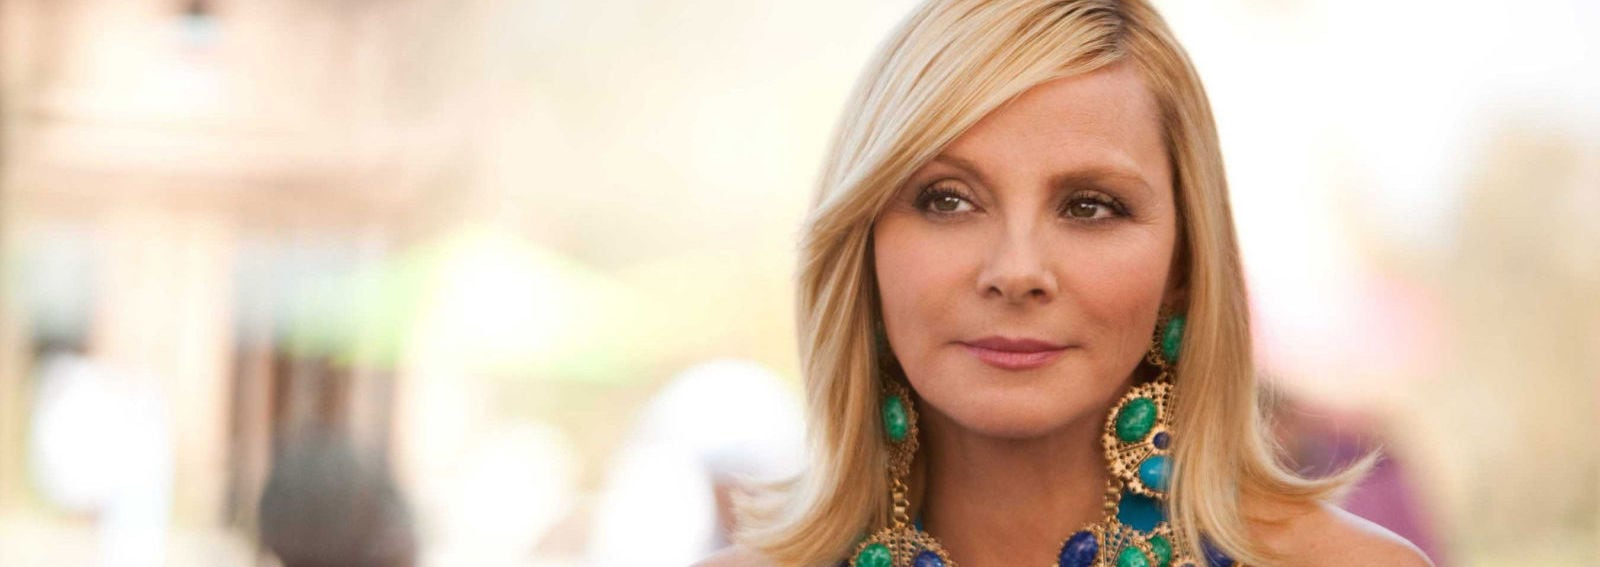 Samantha Jones orecchini grandi